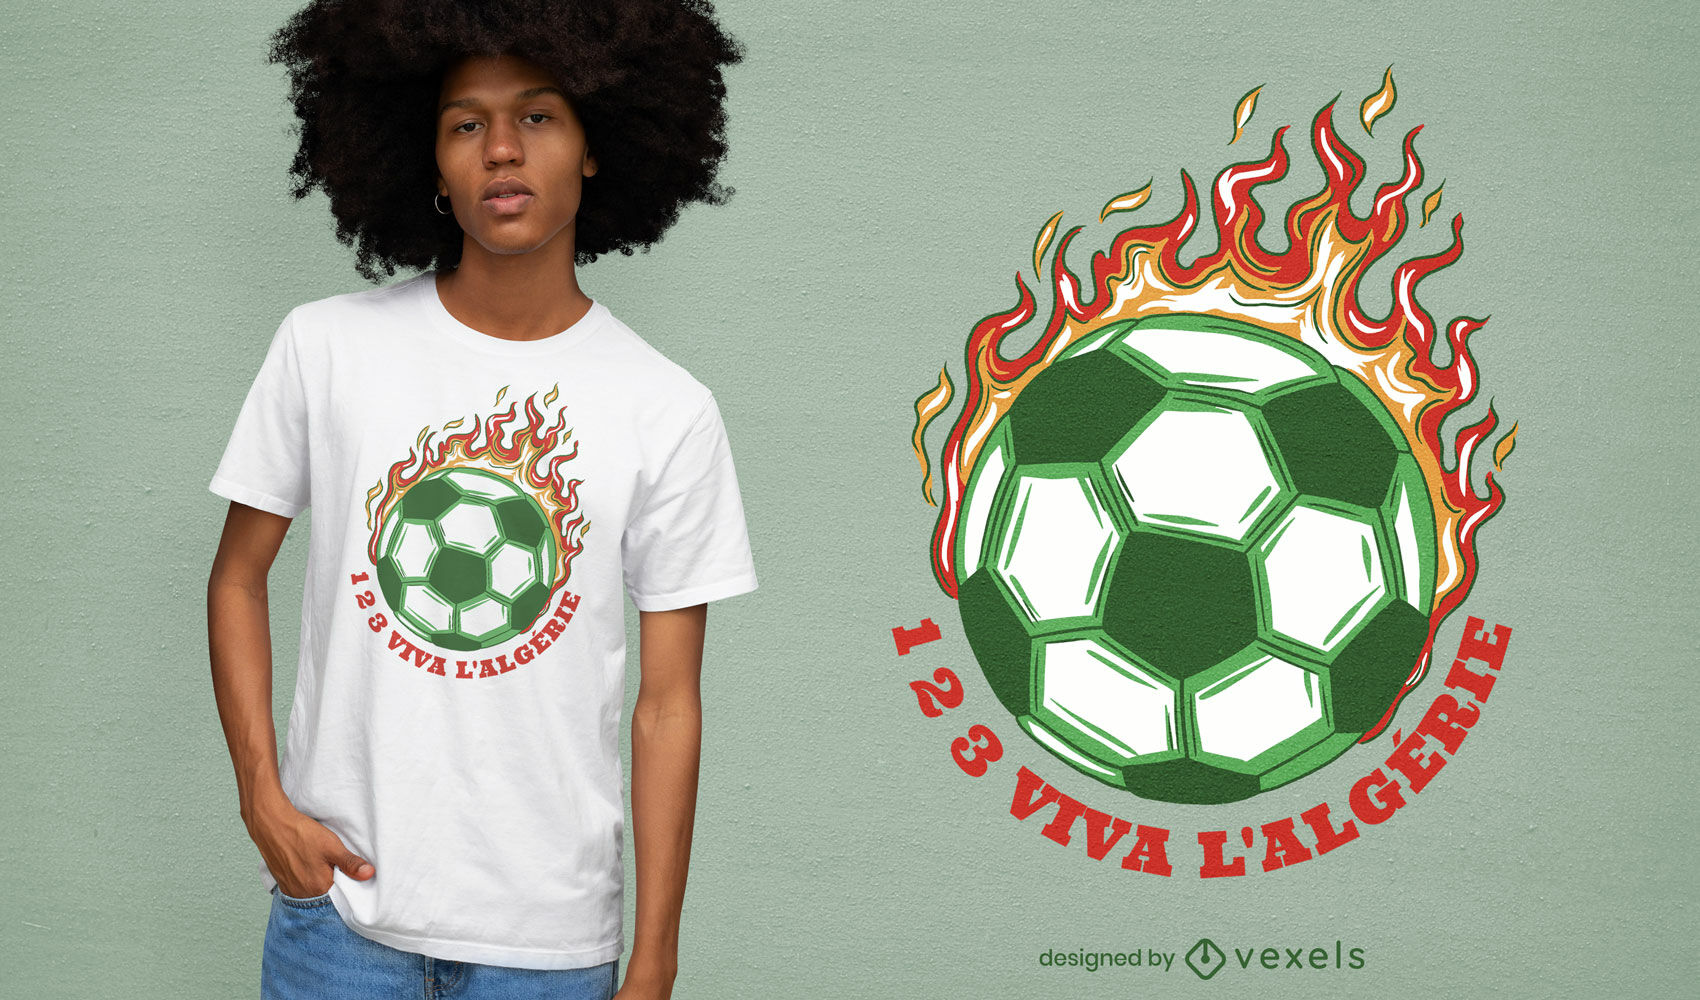 REQUEST Awesome soccer t-shirt design